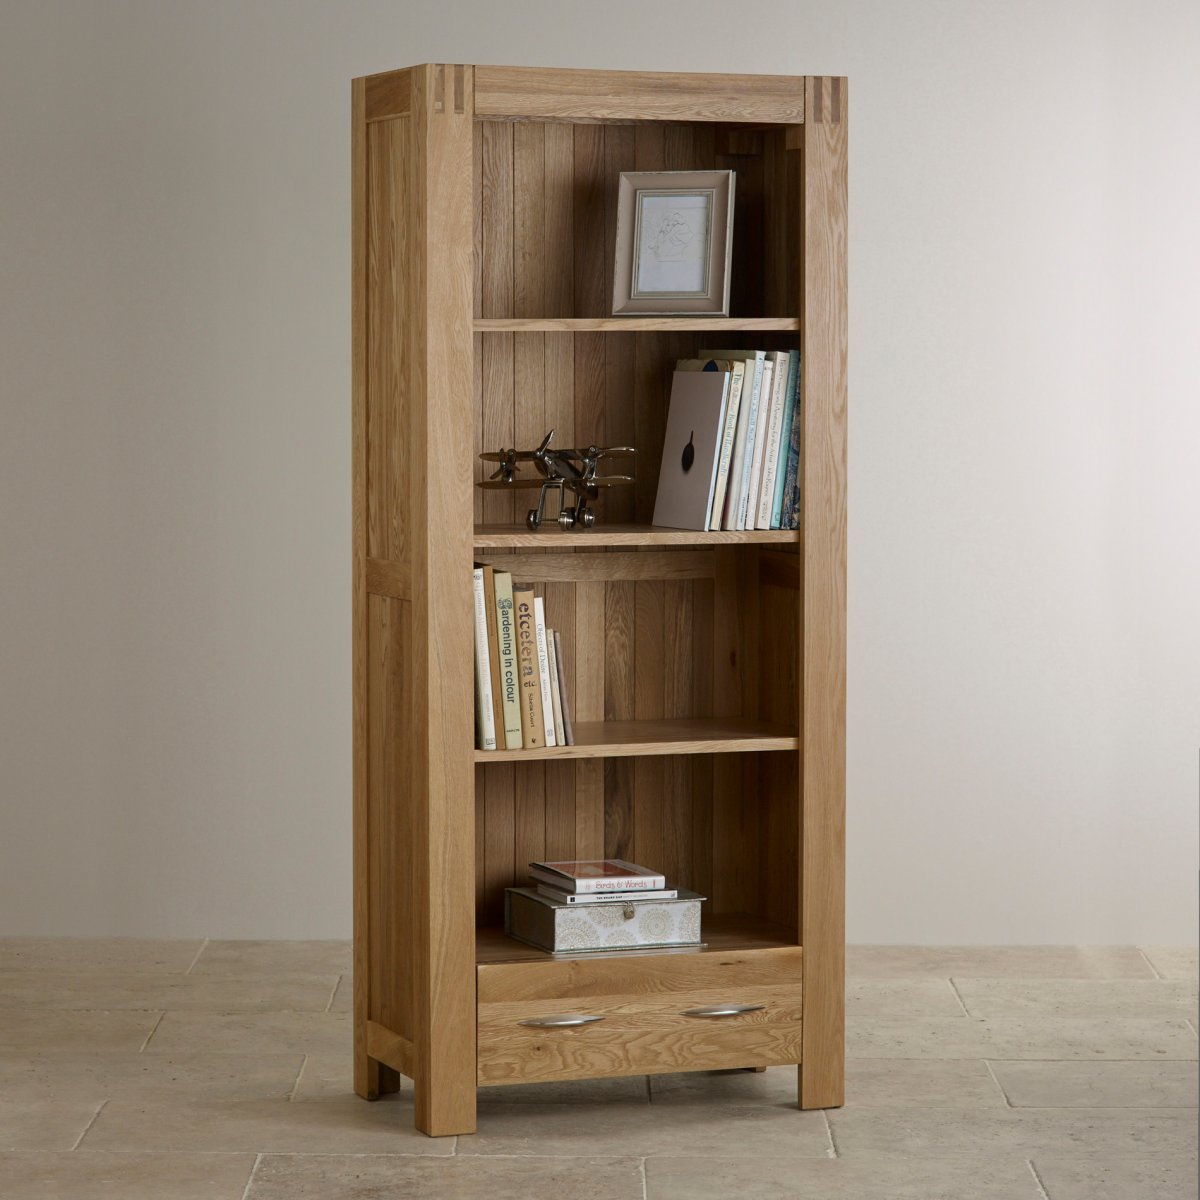 Living Room With Bookshelf: Alto Natural Solid Oak Bookcase